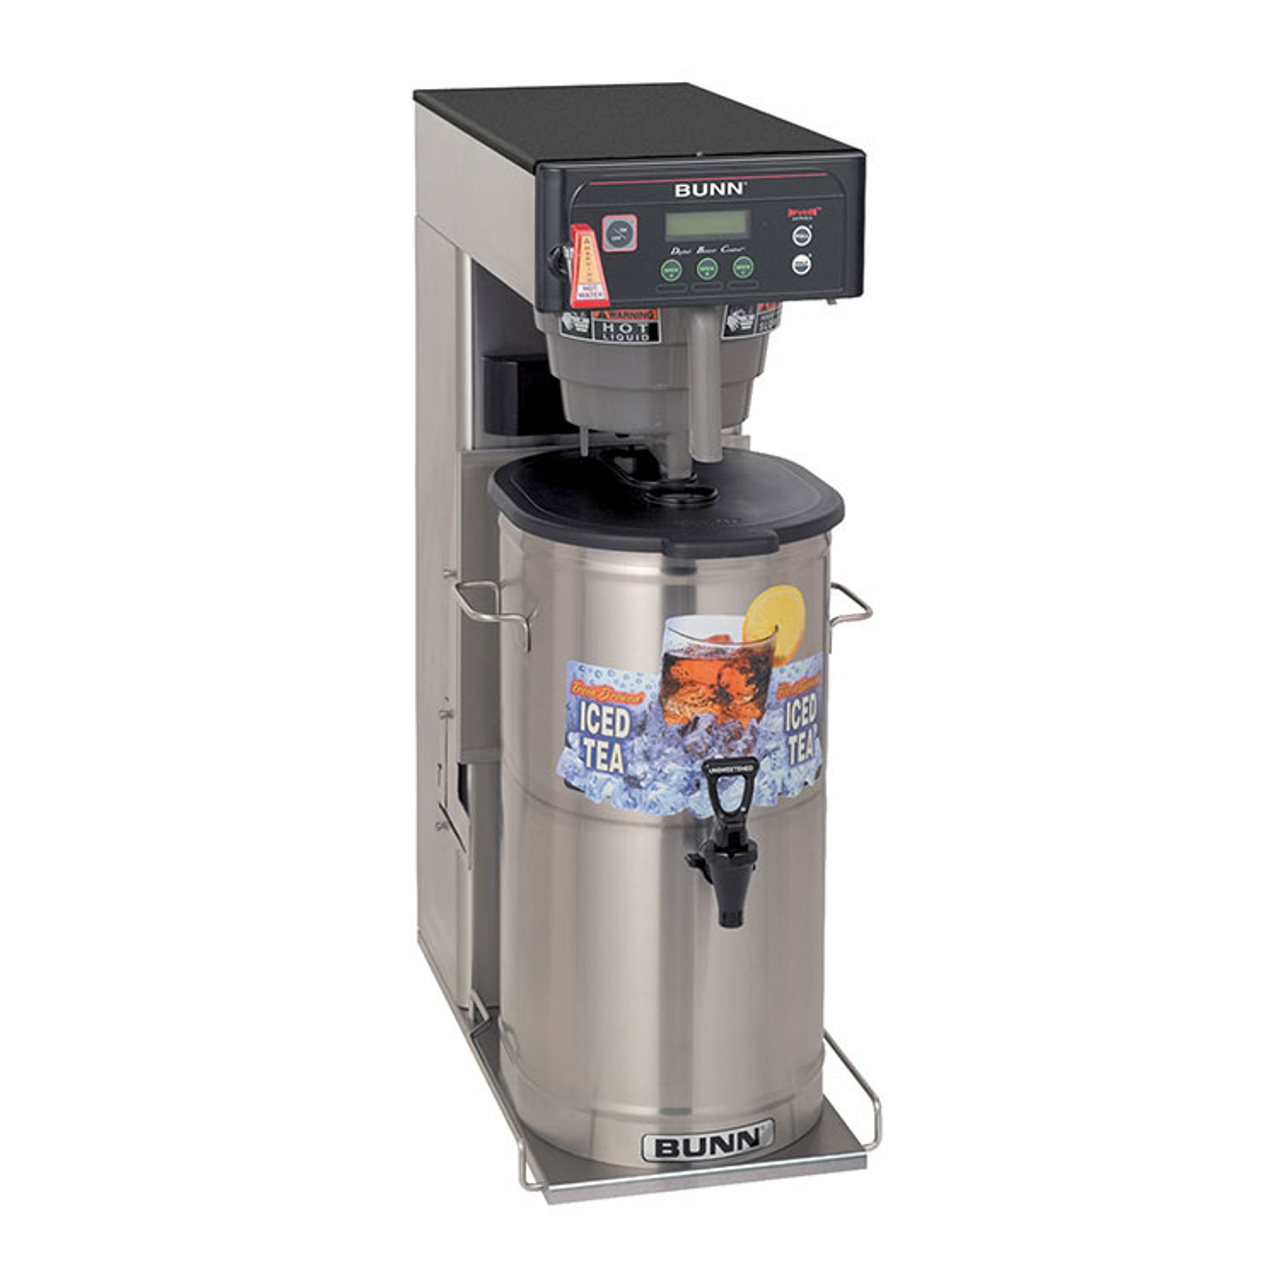 """35700.0019  ITCB-DV Infusion Series® Tea/Coffee Brewer, dual voltage adaptable, 3 or 5 gallon capacity single brewer, 29"""" trunk with flip tray & overlays, full/half batch switches, BrewWISE® intelligence with pre-infusion & pulse brew, Energy-saver mode, English/Spanish alphanumeric & advertising display, brew counter, brews into: BUNN tea dispensers TD4, TD4T, TDS-3, TDS-3.5, TDO-4, TDO-5, TDO-N-3.5 & TDO-N-4 (sold separately) & 1.9 to 3.8 litre airpots, operates at 120v (15amp), or 120/208v-240v (20amp), NSF, UL"""